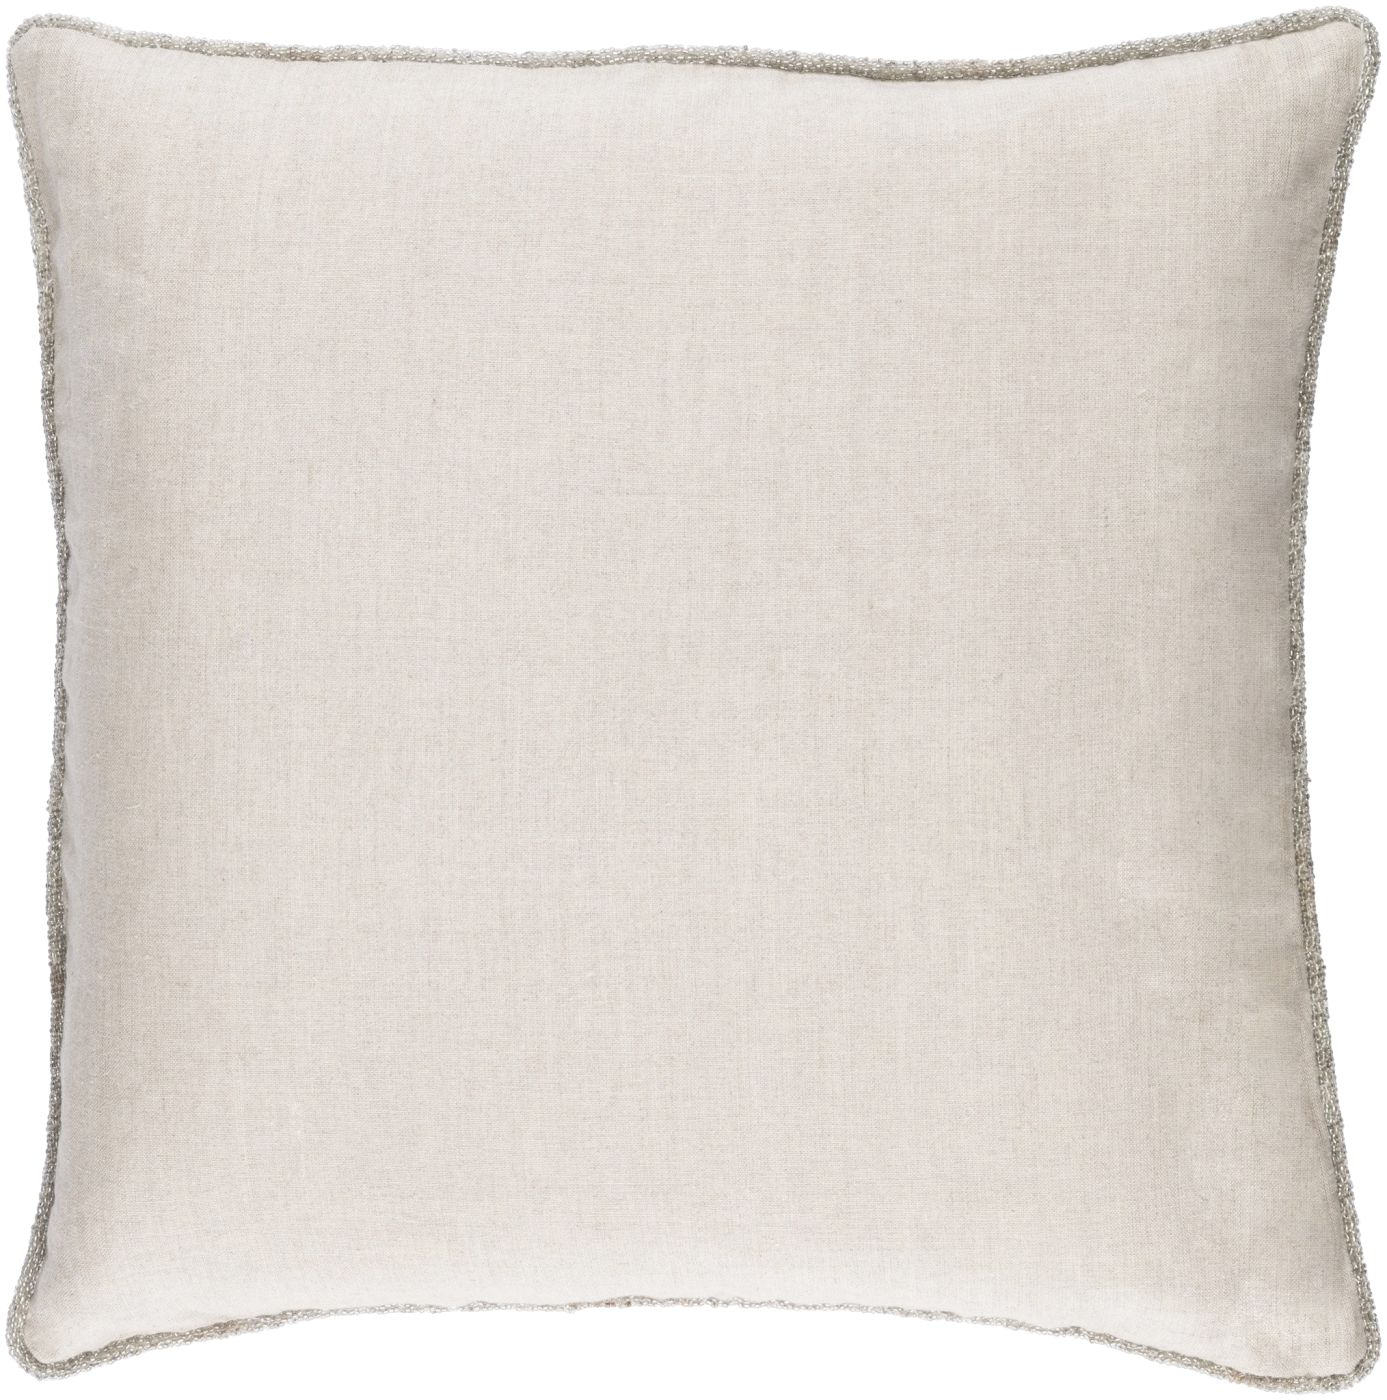 Throw Pillows Native American : Surya Sasha Throw Pillow Neutral AH006-1818D. Only $95.40 at Contemporary Furniture Warehouse.